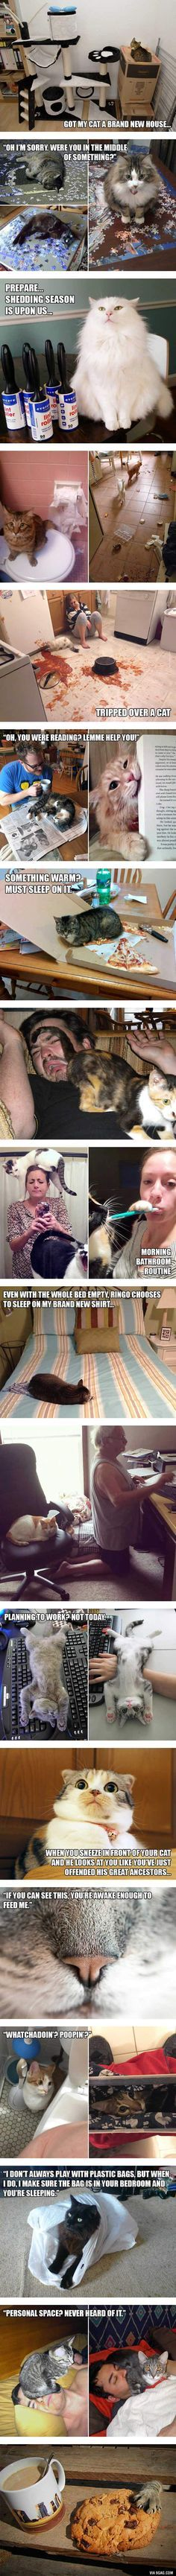 Hilarious Struggles Only Cat Owners Will Understand